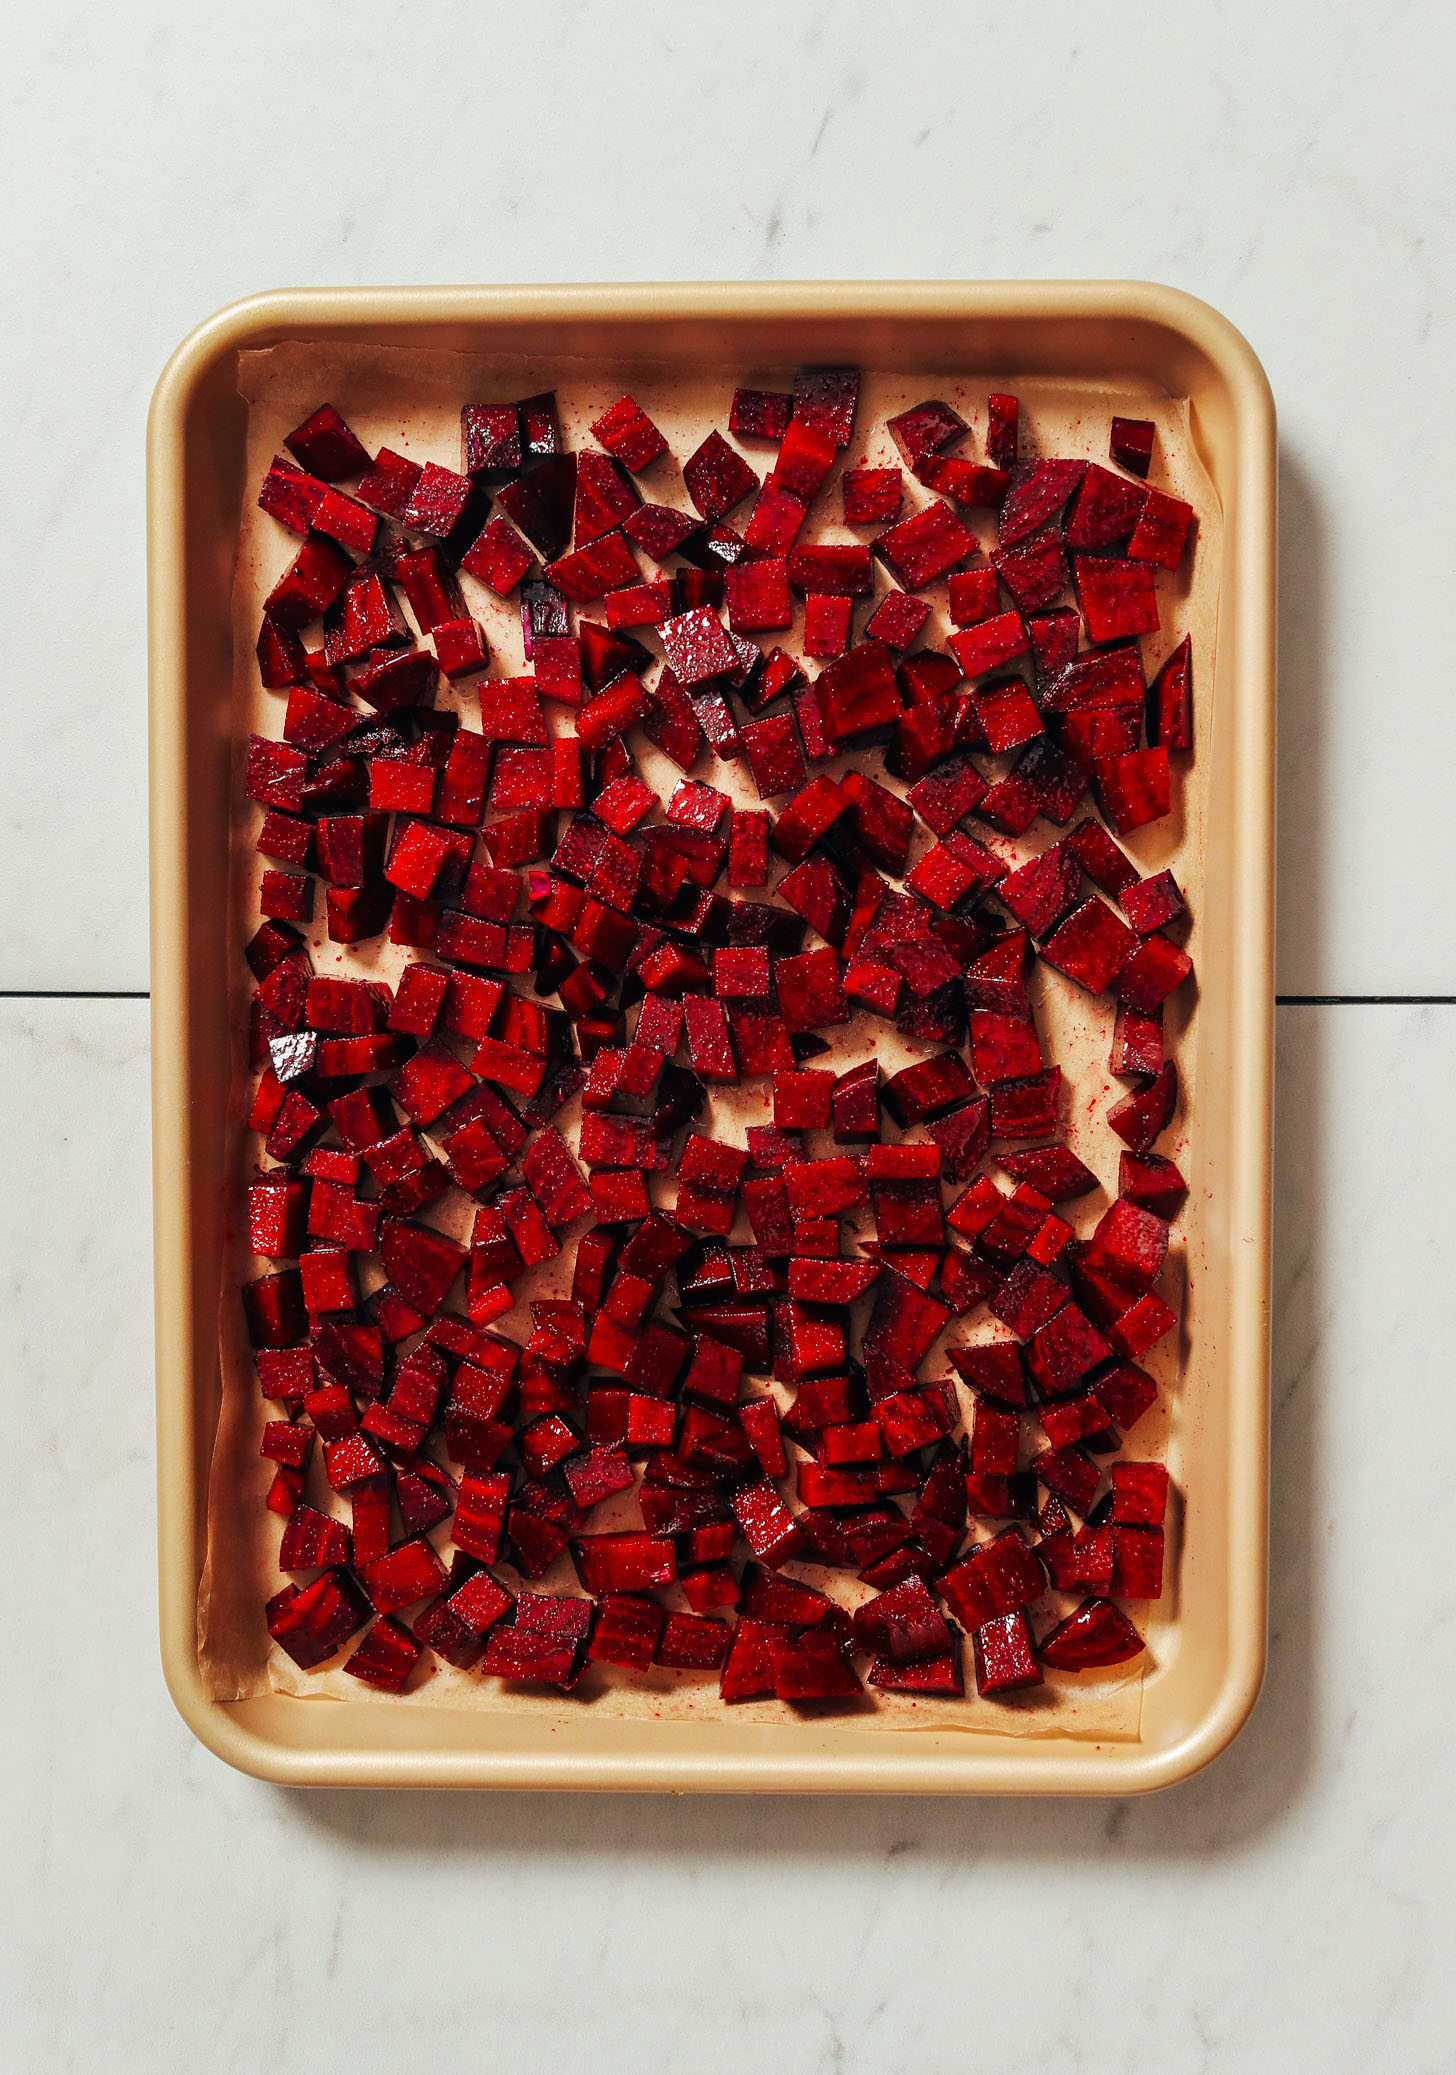 Baking sheet of cubed beets with seasonings